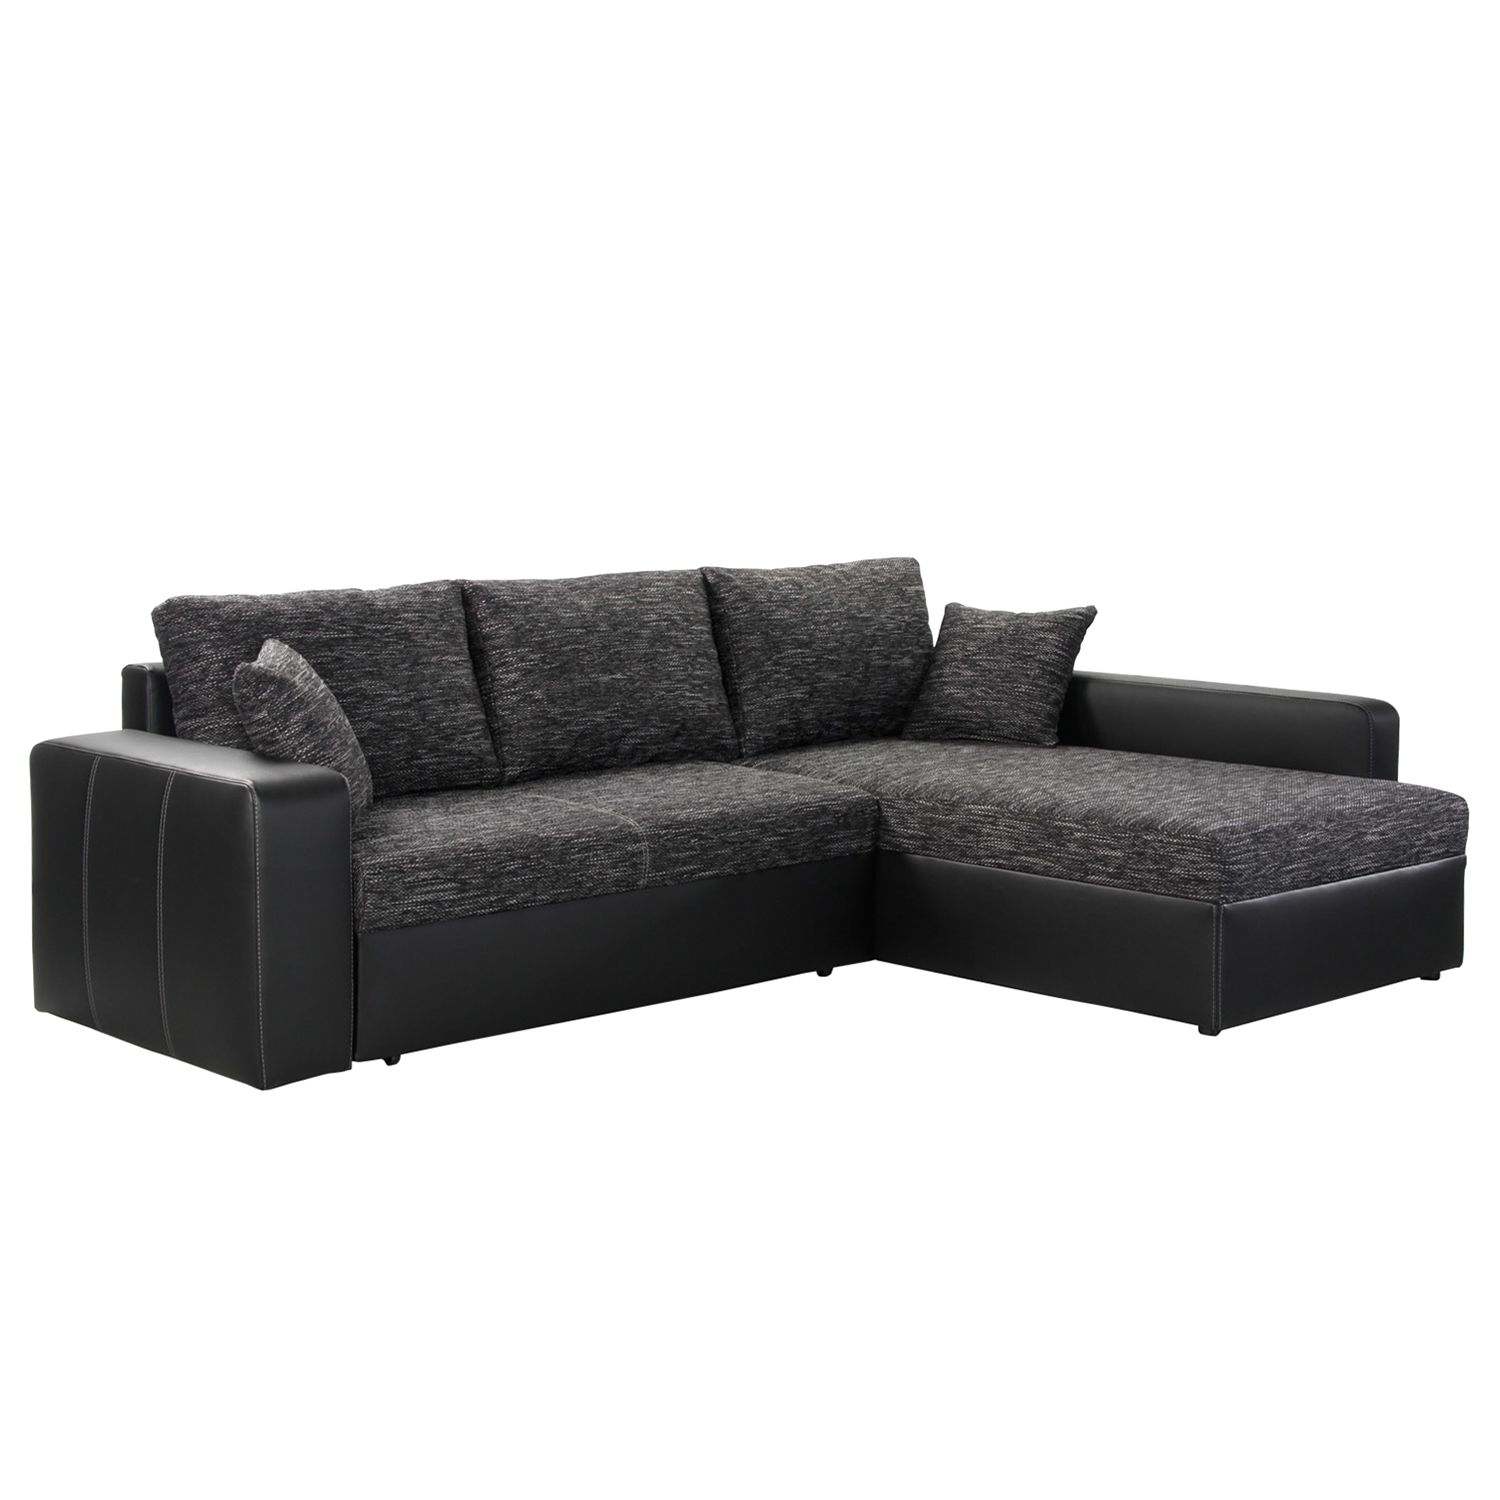 ecksofa mit schlaffunktion panama inspirierendes design f r wohnm bel. Black Bedroom Furniture Sets. Home Design Ideas